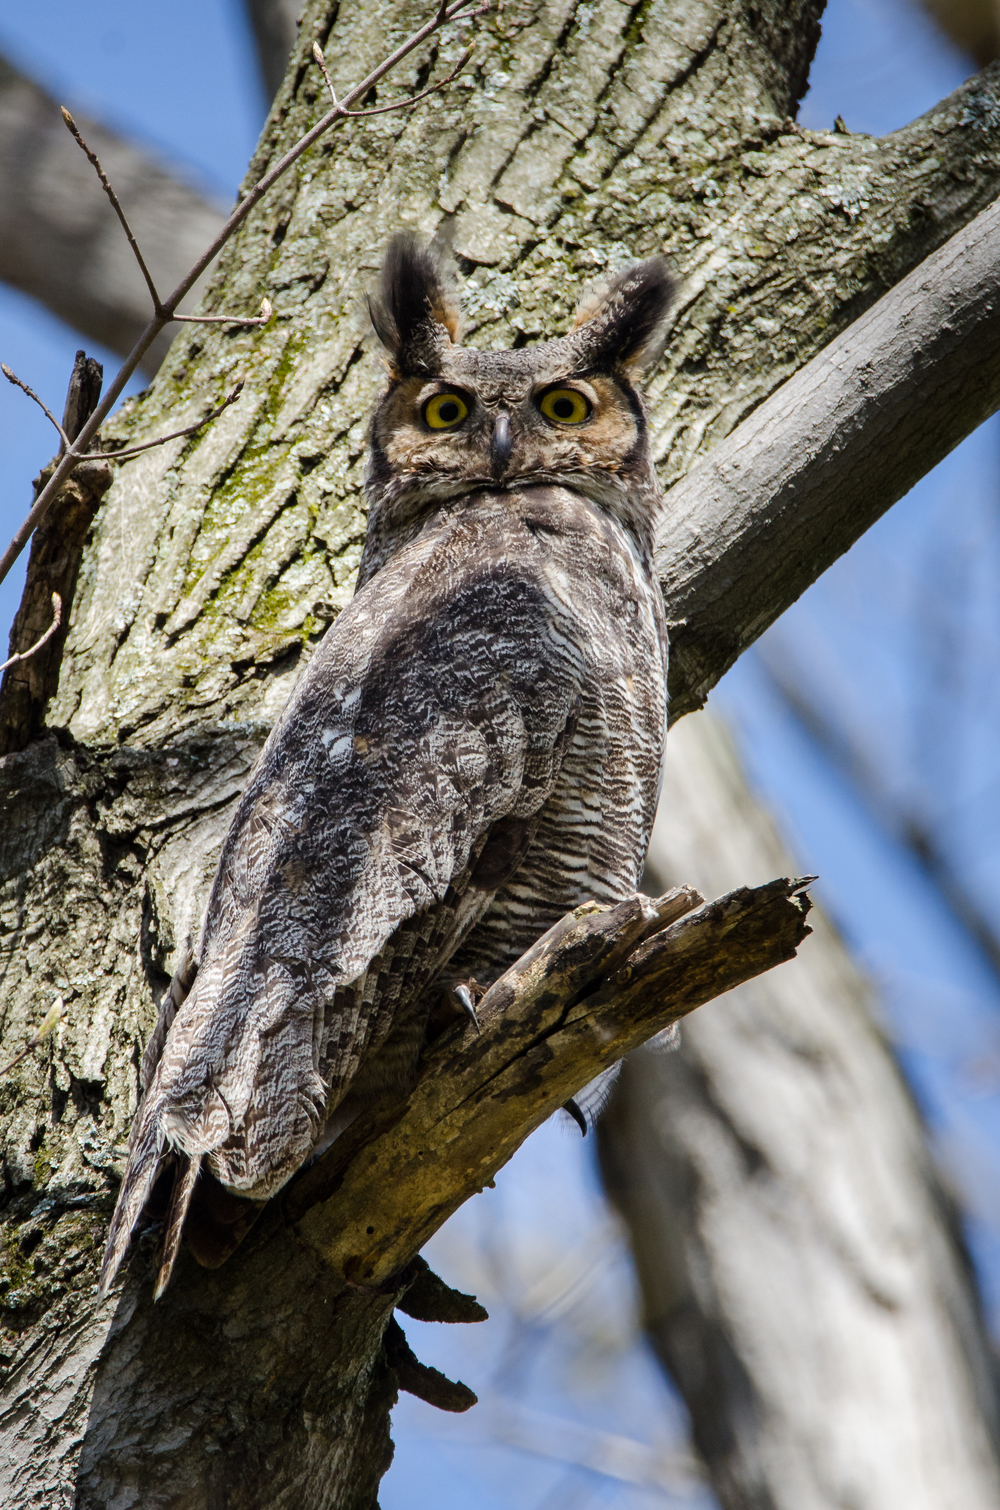 Male   Great Horned Owl   Nikon D7000 ISO 800 600mm f/10 1/640 sec